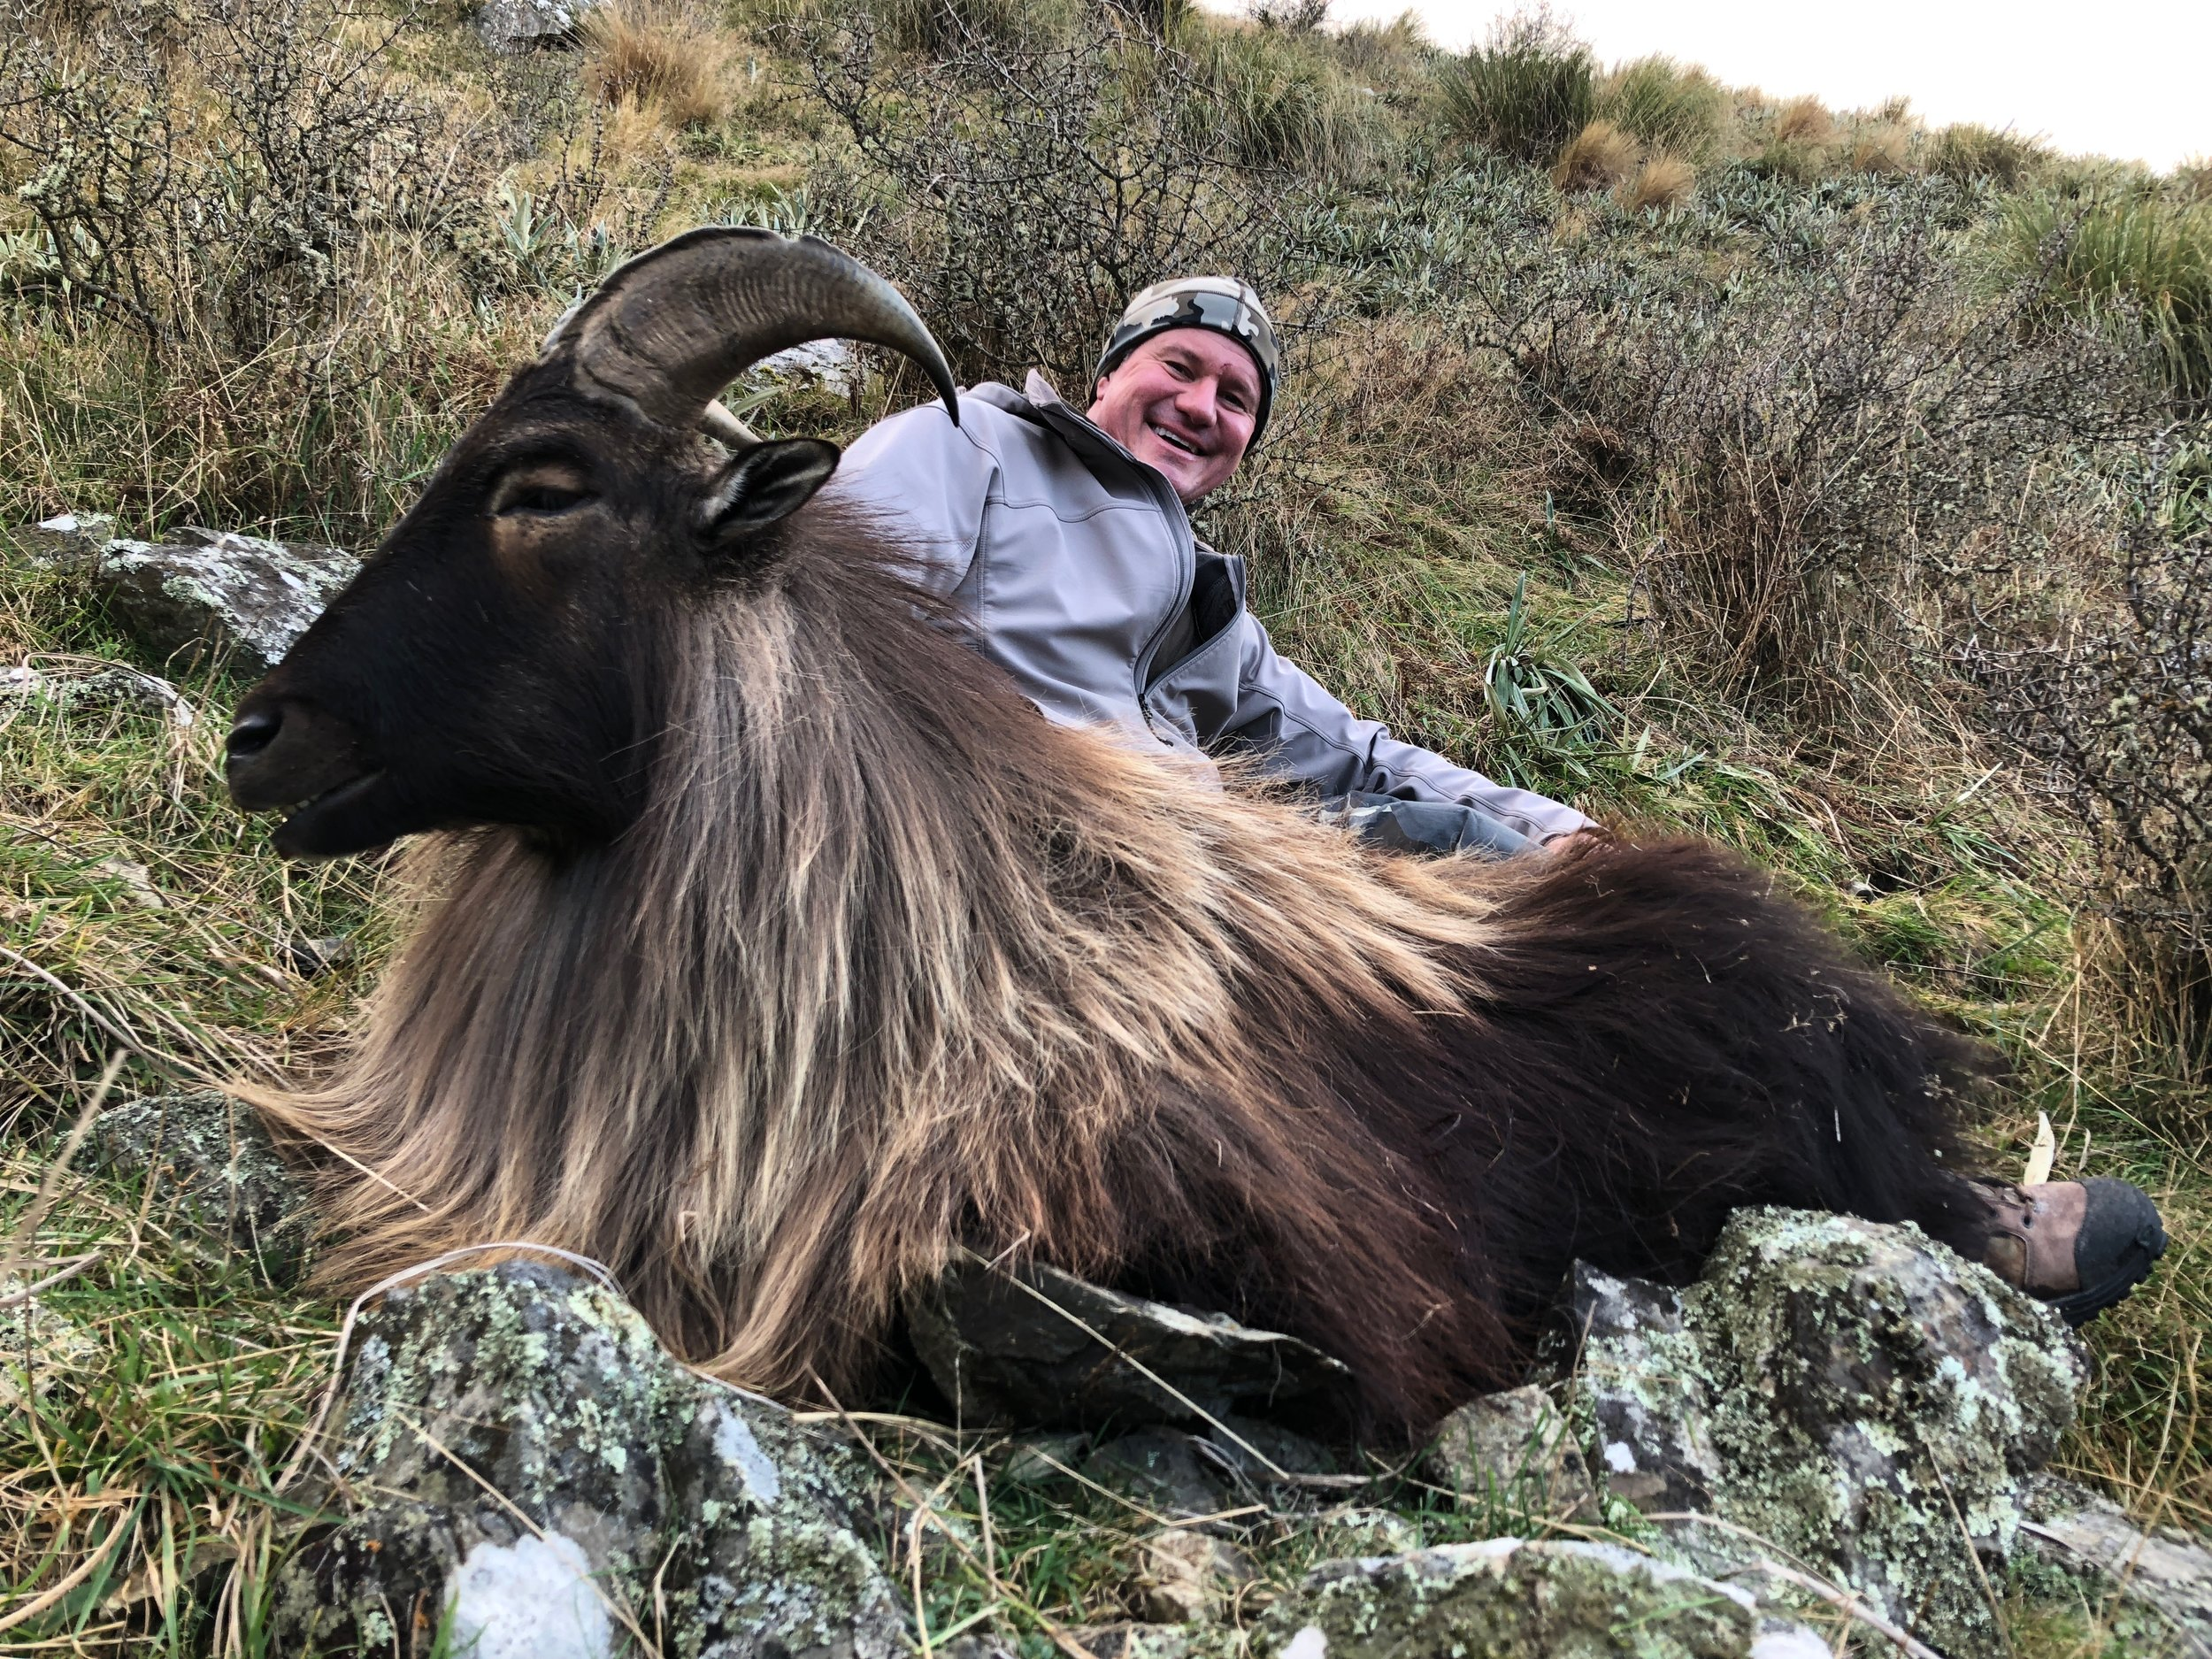 Spring Tahr hunt - Season: 1st August - 30th October each year$4950/per hunter (minimum 2 hunters)5 days | 4 nightsExceptional post rut bull Tahr foot hunting. See mobs of multiple bulls. The bulls are in full winter skin and make for an outstanding trophy mount. Add management nanny Tahr for $1000 trophy fee.Limited number of Chamois permits available also.CONTACT US FOR 2019 & 2020 SPRING HUNT OPPORTUNITIES